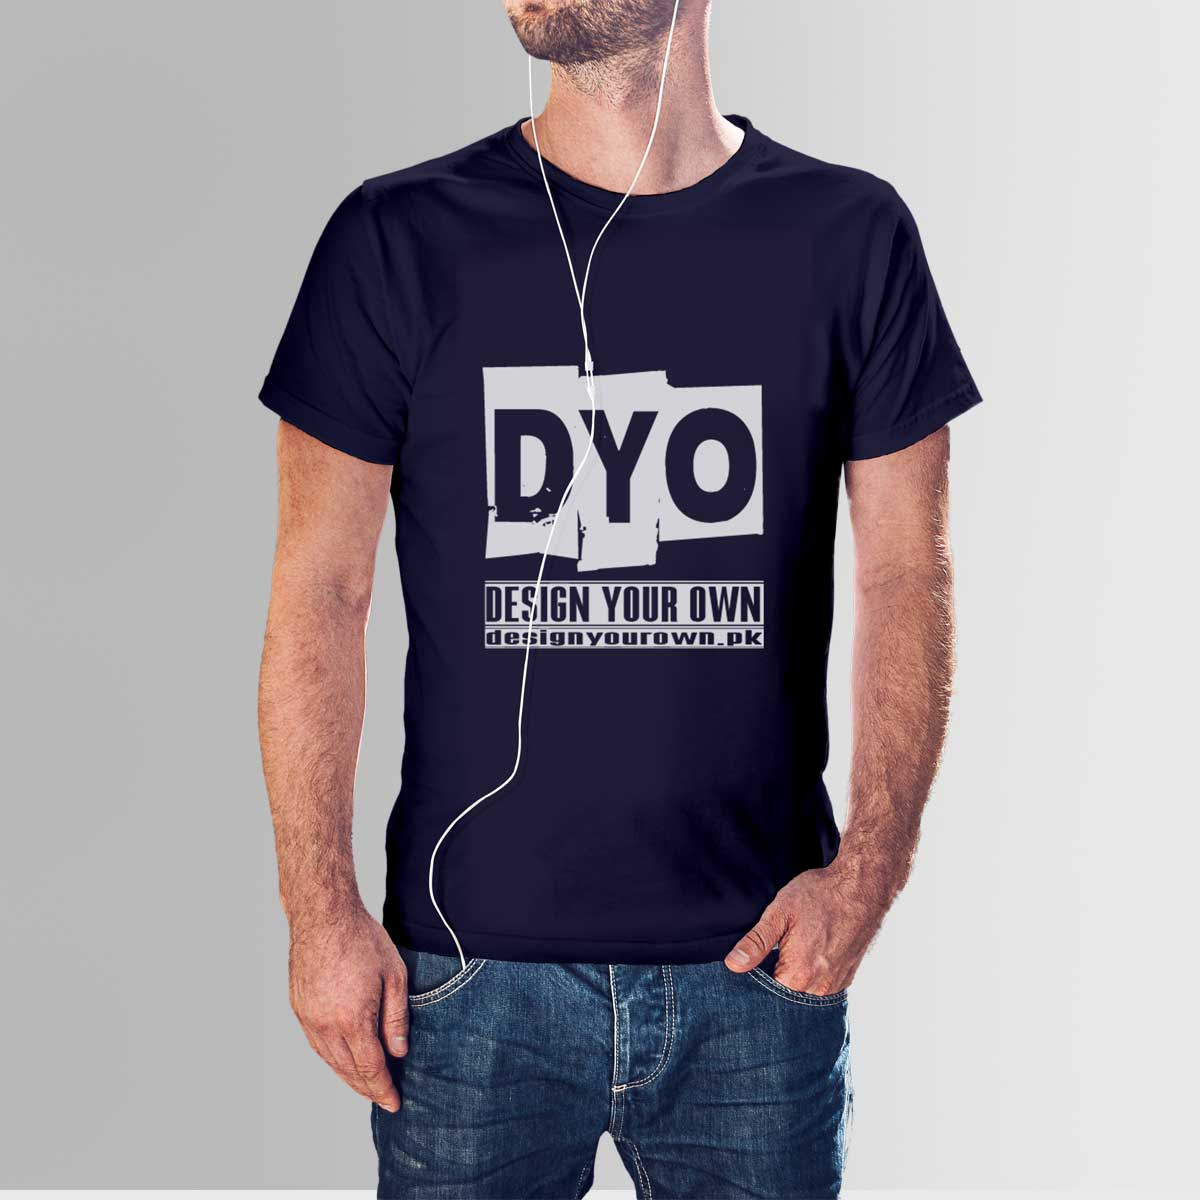 Design your own high quality cotton t shirt for men crew for Design your own t shirt at home